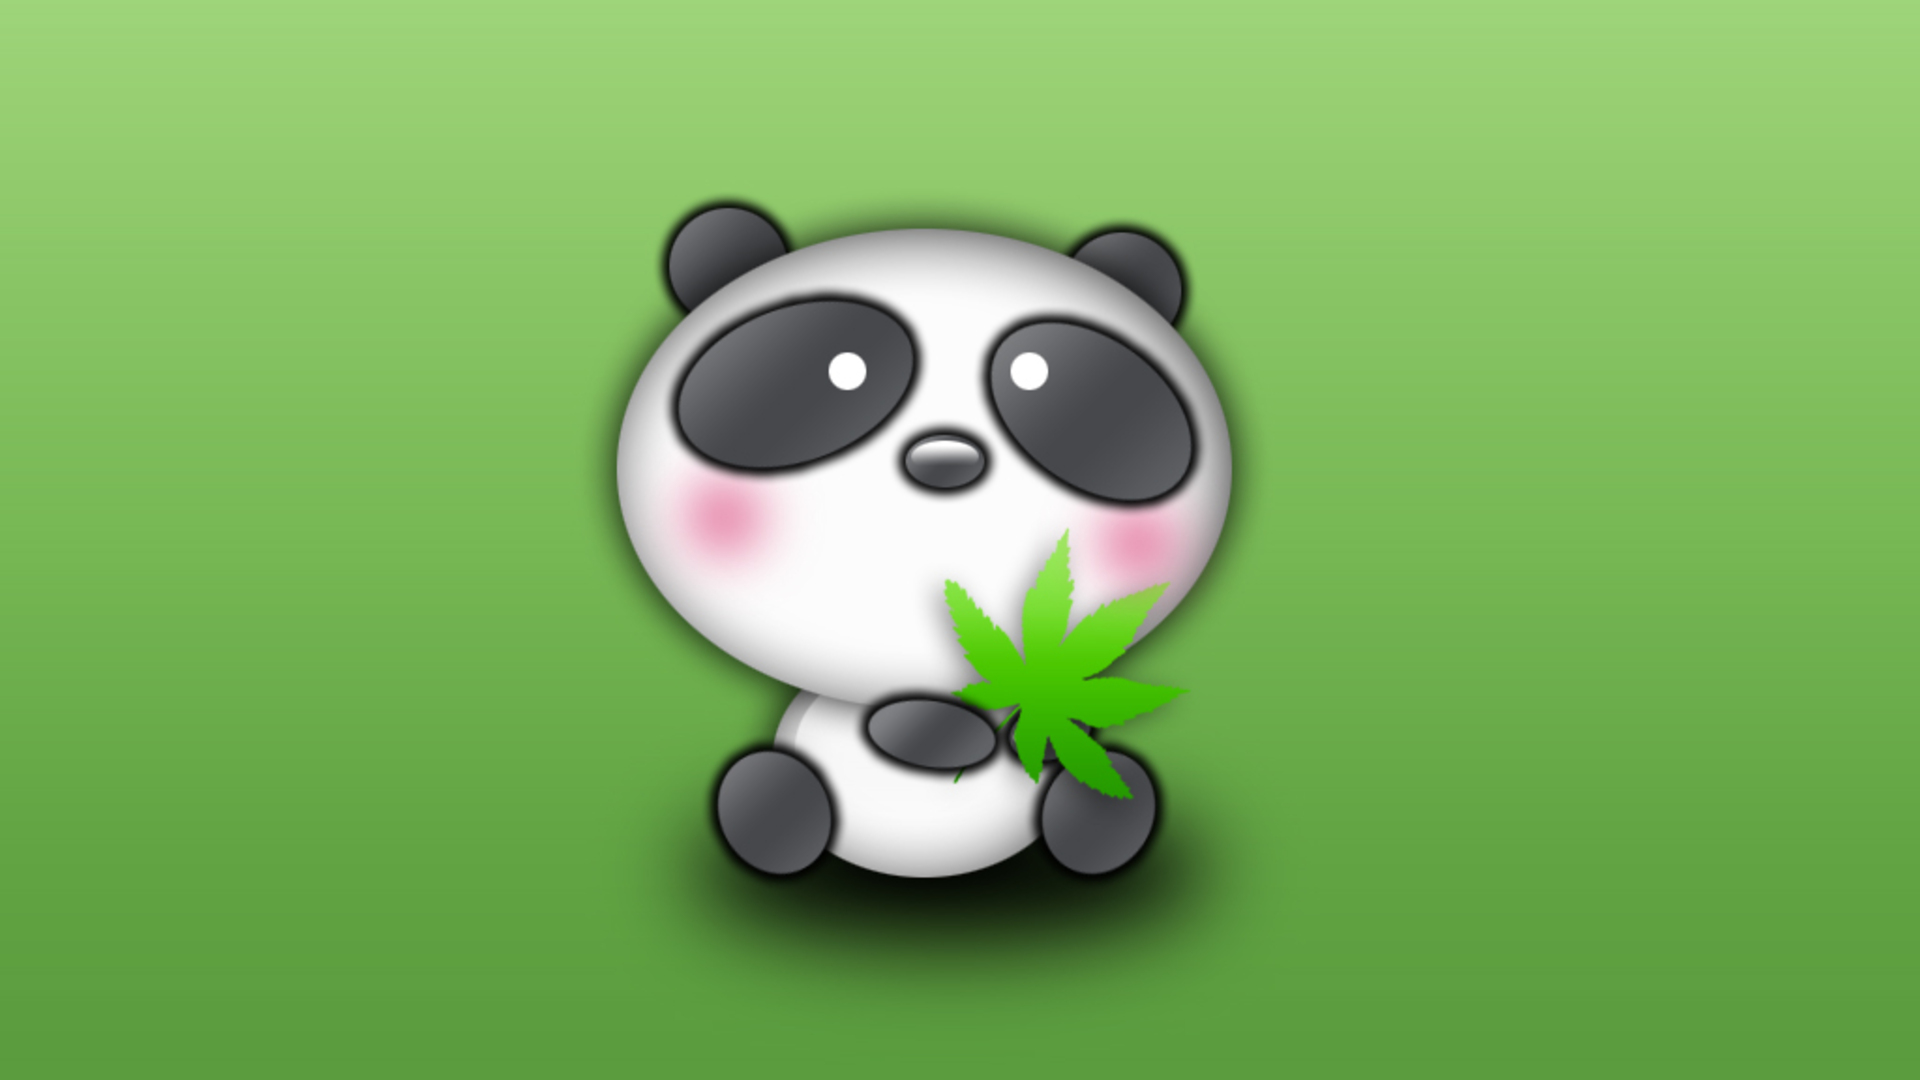 Panda bear wallpapers hd wallpapers - Cute cartoon hd images ...